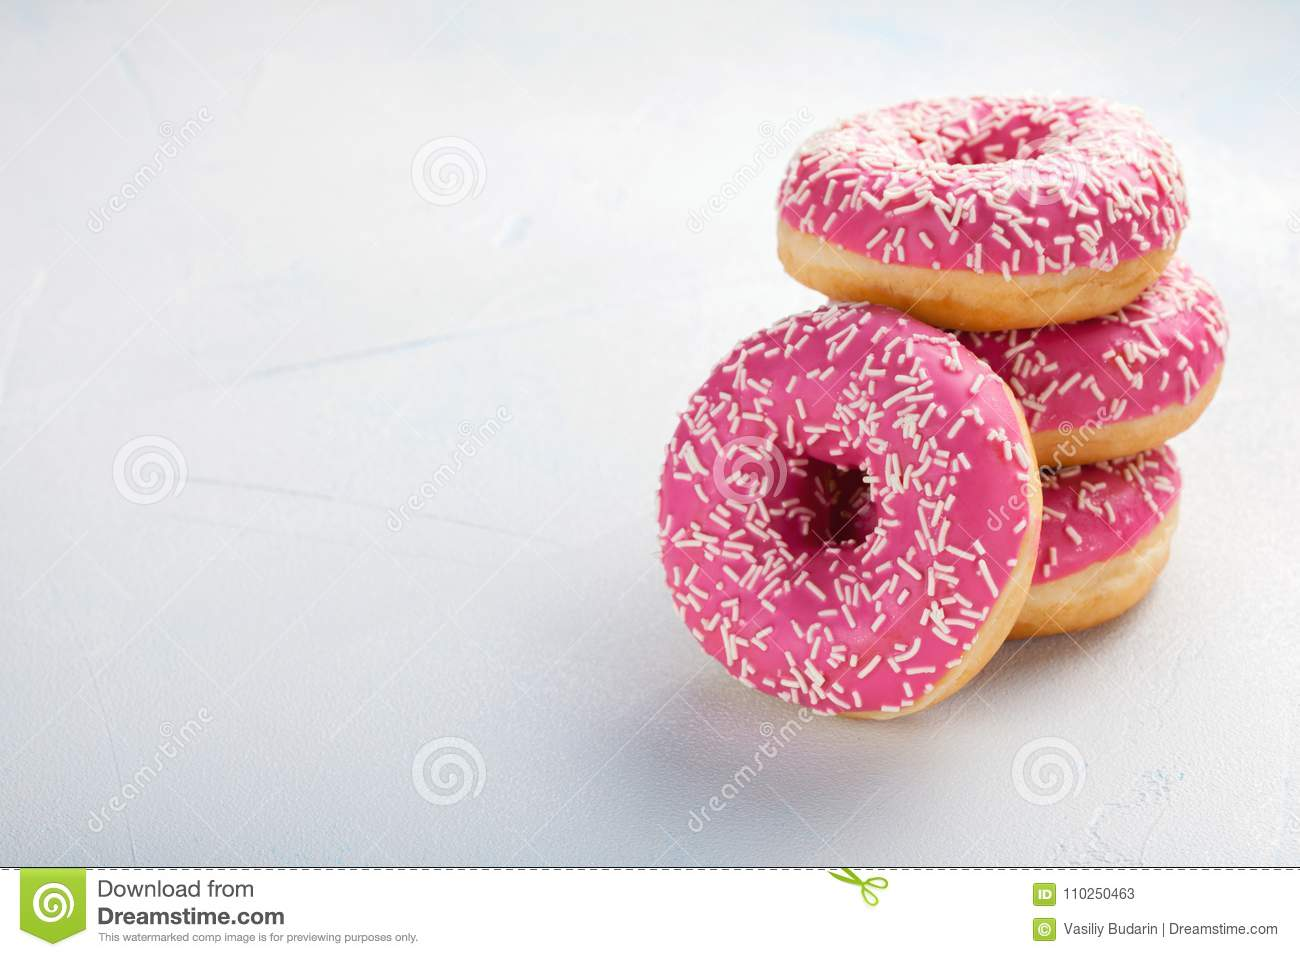 Donut. Sweet icing sugar food. Dessert colorful snack. Treat from delicious pastry breakfast. Bakery cake. Doughnut with frosting.